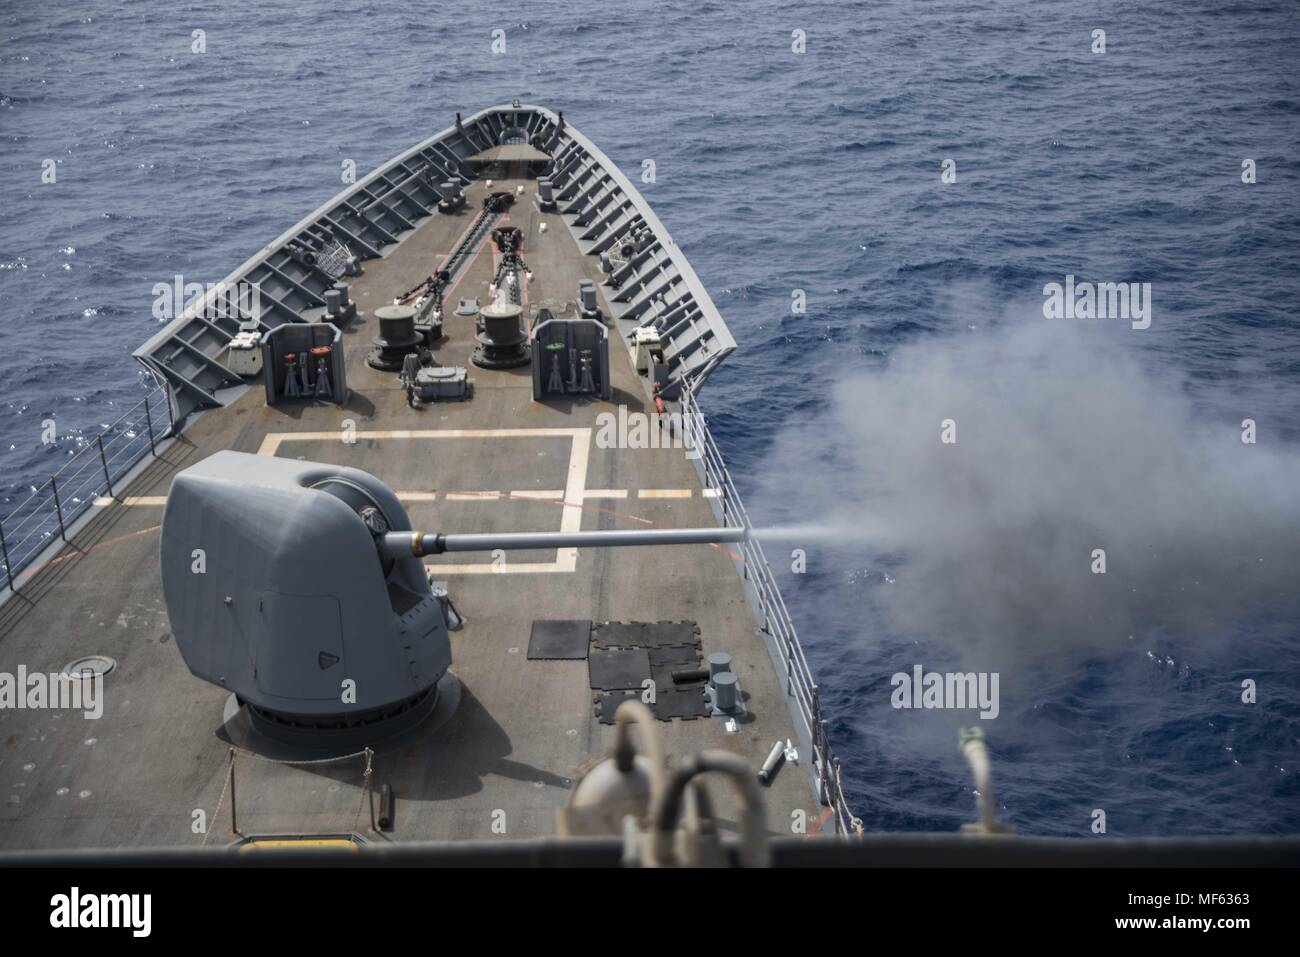 180419-N-DO281-0119 MEDITERRANEAN SEA (April 19, 2018) The guided-missile cruiser USS Monterey (CG 61) fires it's 5-inch gun during a live-fire exercise, April 19, 2018. Monterey, homeported in Norfolk, Va. and is conducting operations in the U.S. 6th Fleet area of operations in support of U.S. national security interest in Europe. (U.S. Navy photo by Mass Communication Specialist Seaman Trey Fowler/Released). () - Stock Image